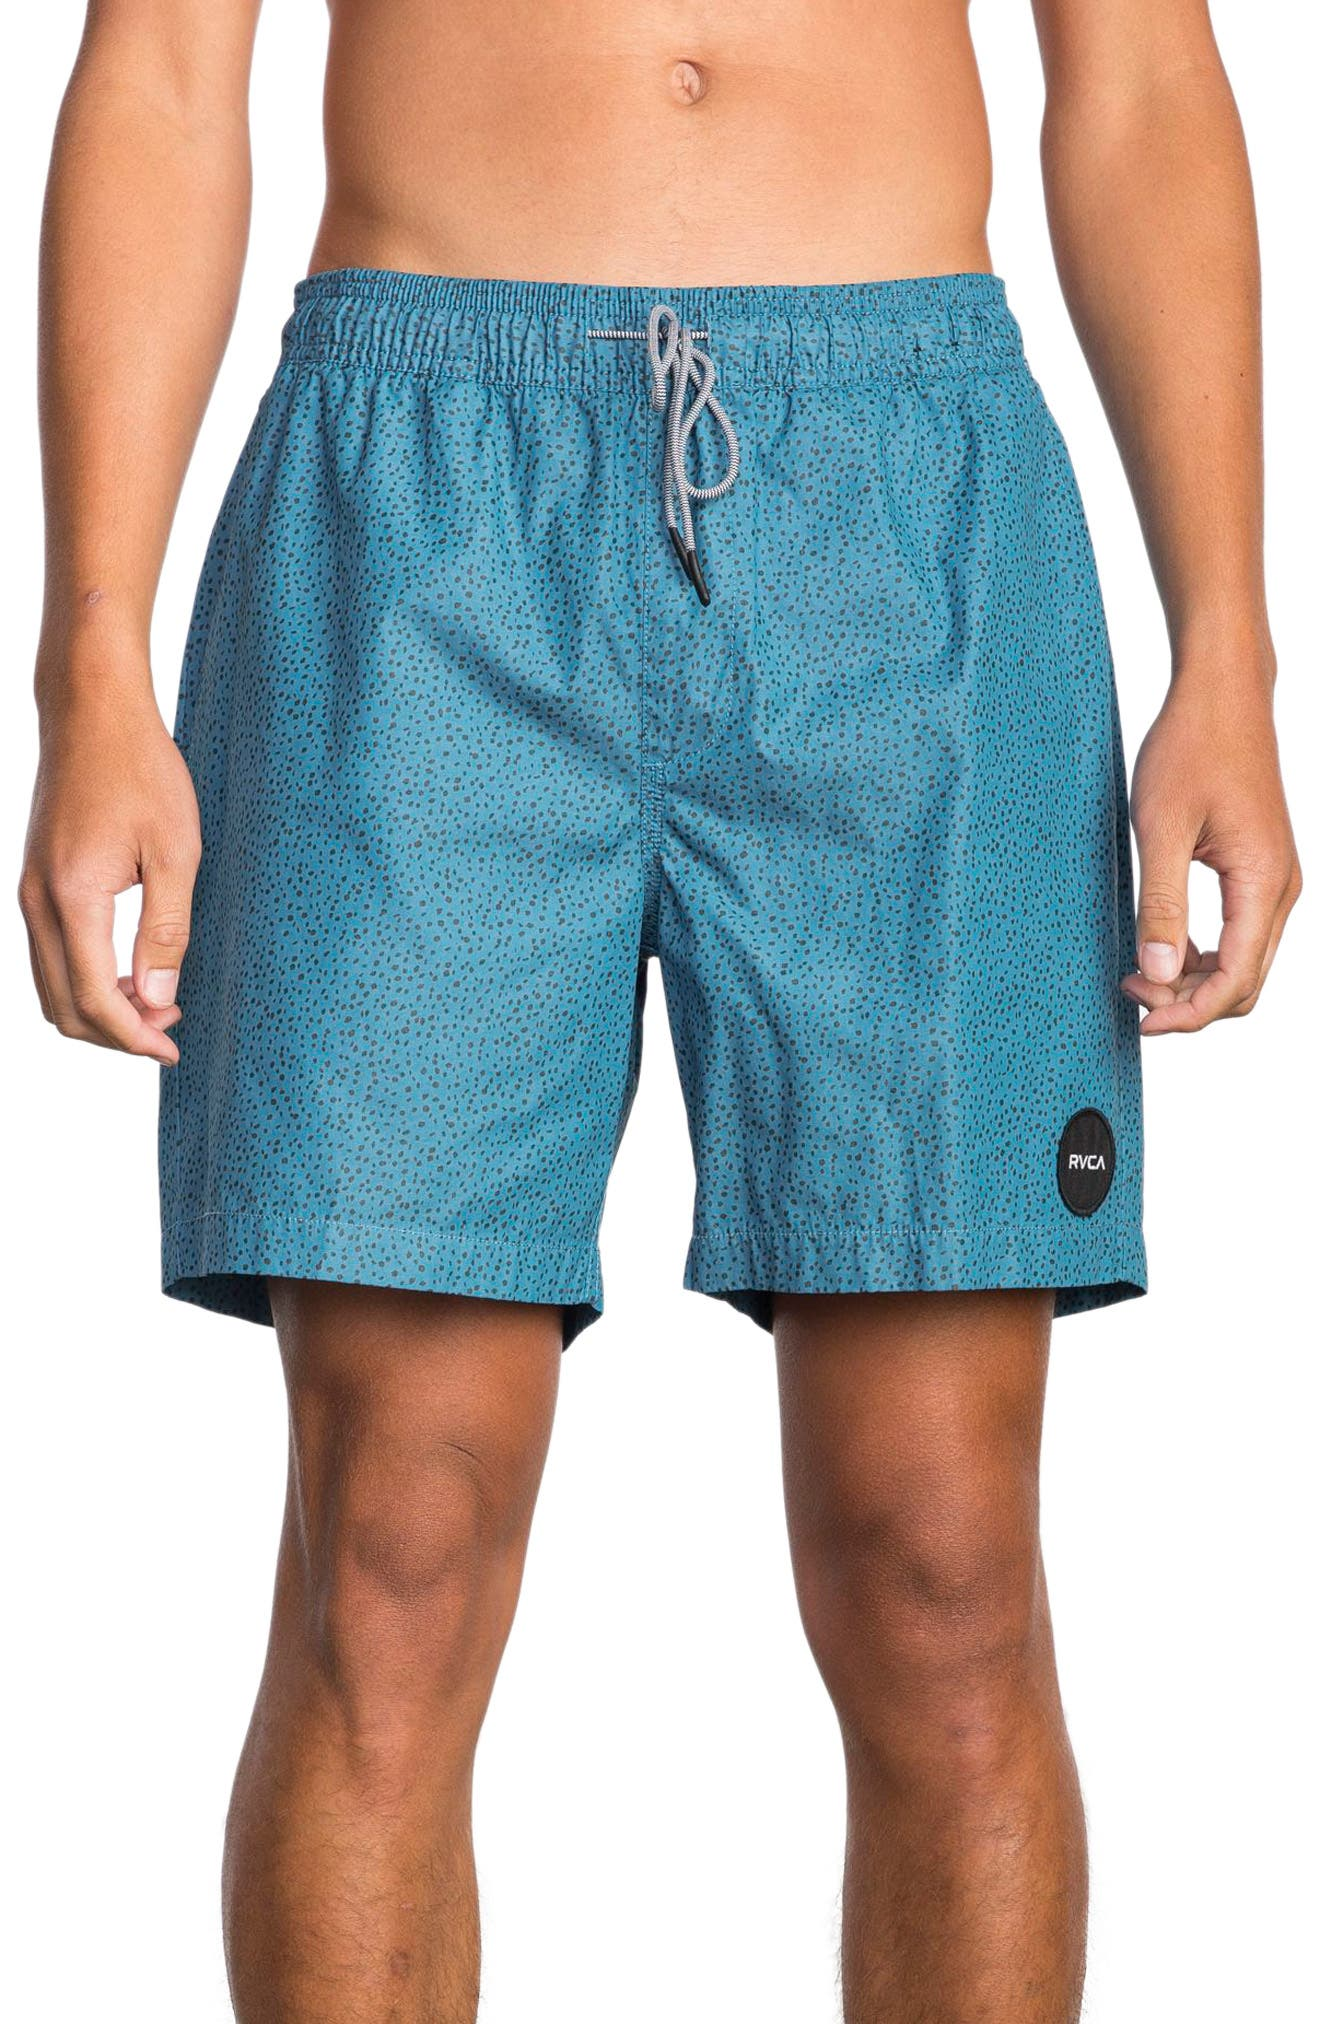 RVCA Speckled Print Swim Trunks